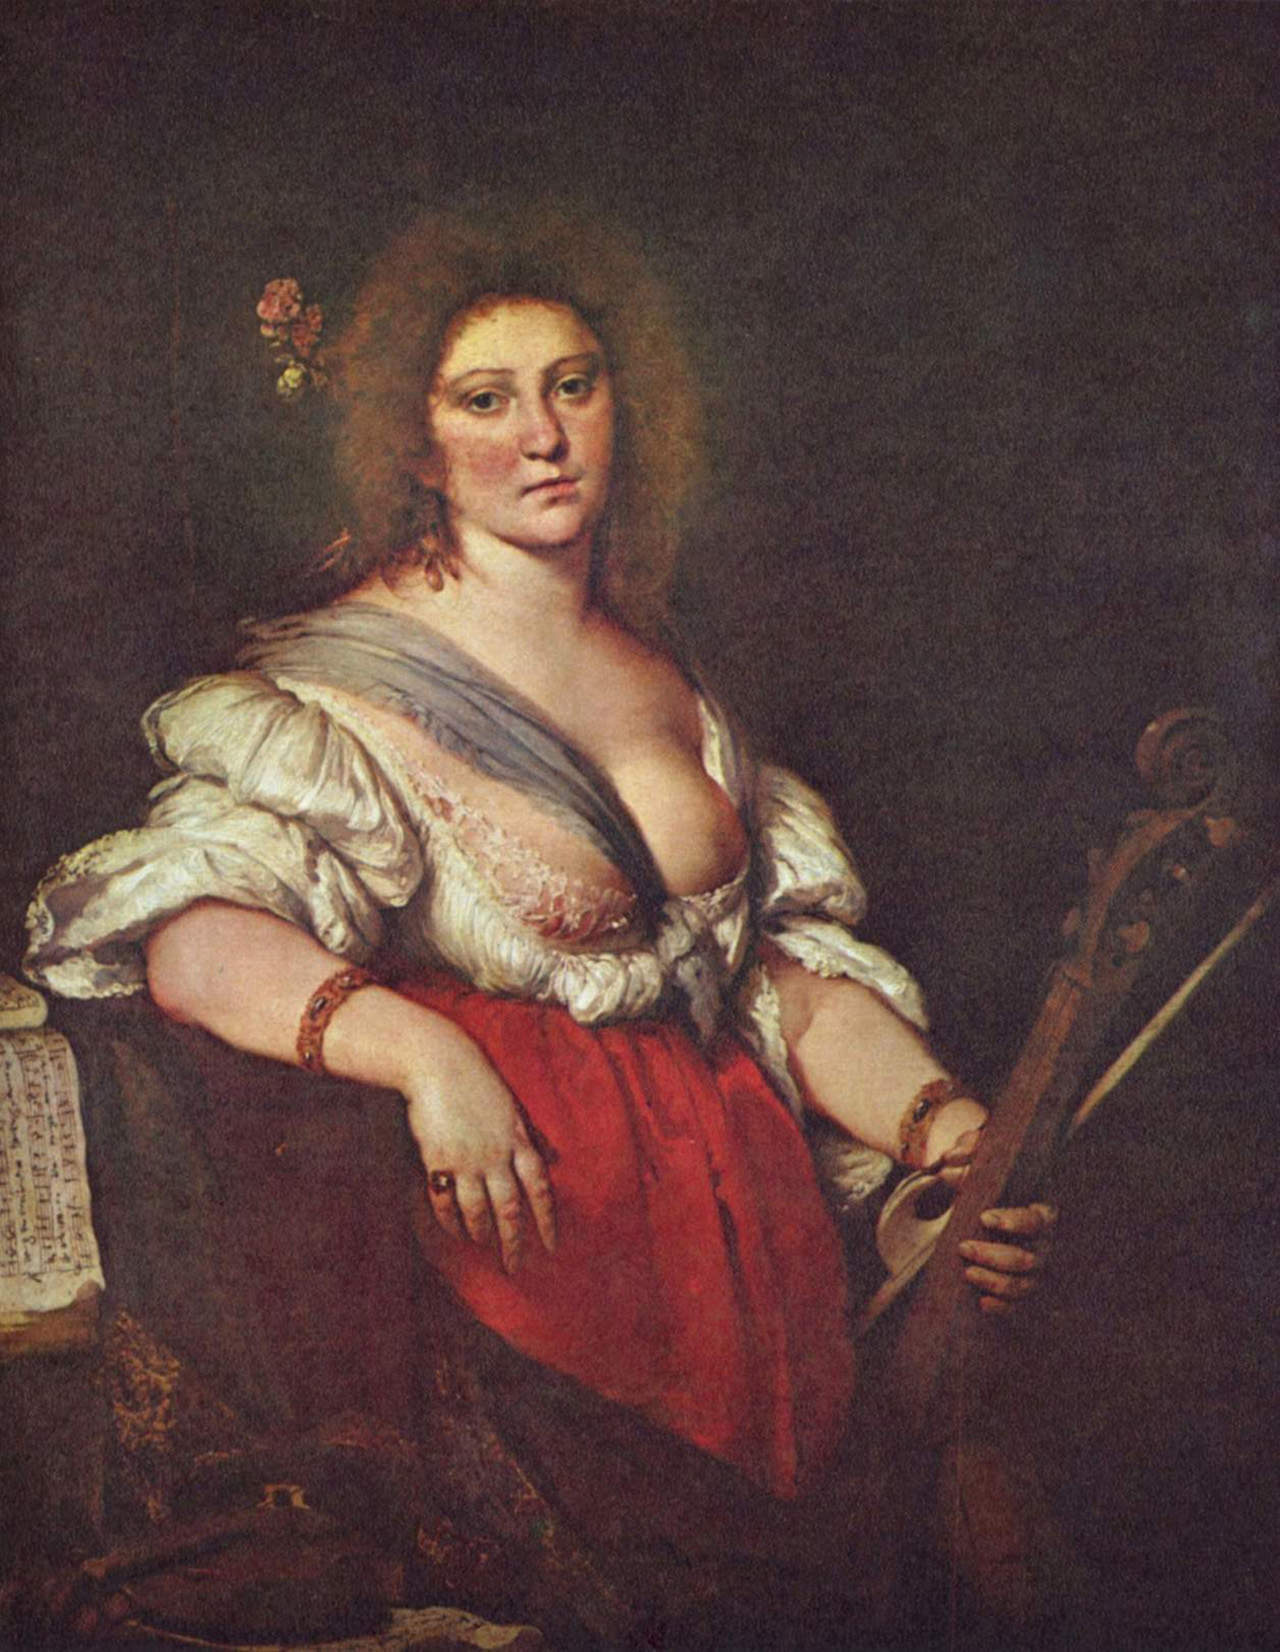 Unchained melodies: the forgotten women composers of Western classical music